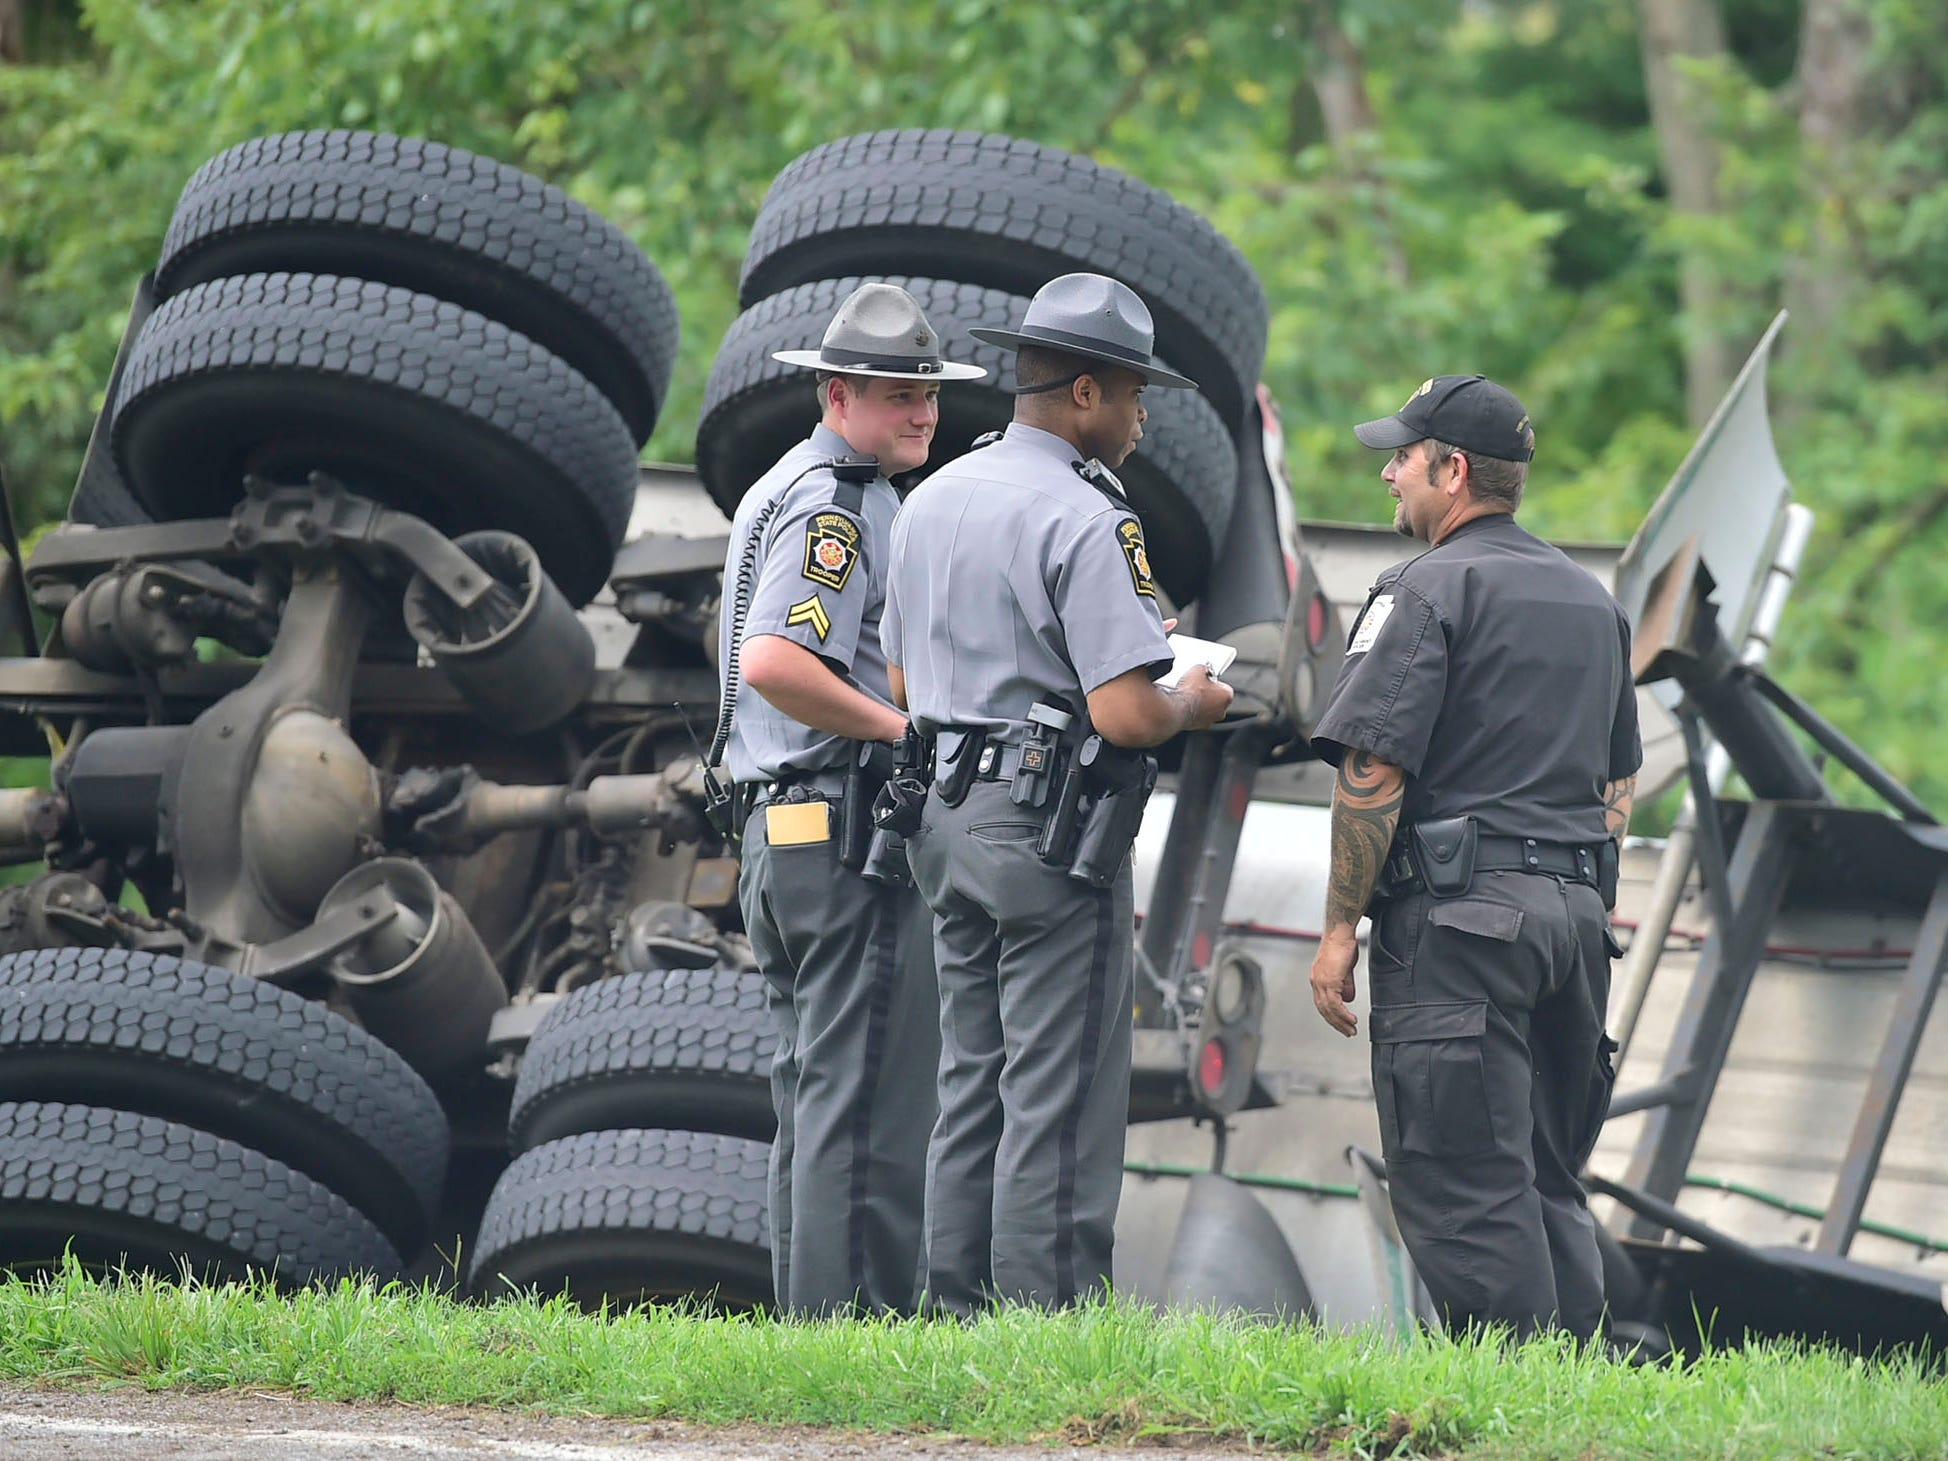 A tractor-trailer, hauling liquid tar, overturned across from 456 Siloam Road, Greene Township, just before 12:30pm, Tuesday, August 7, 2018. The driver was not injured in the crash. The street is closed at Airport Road as state police investigate. Firefighters are trying to contain the flow of oil and keep it out of the nearby creek.